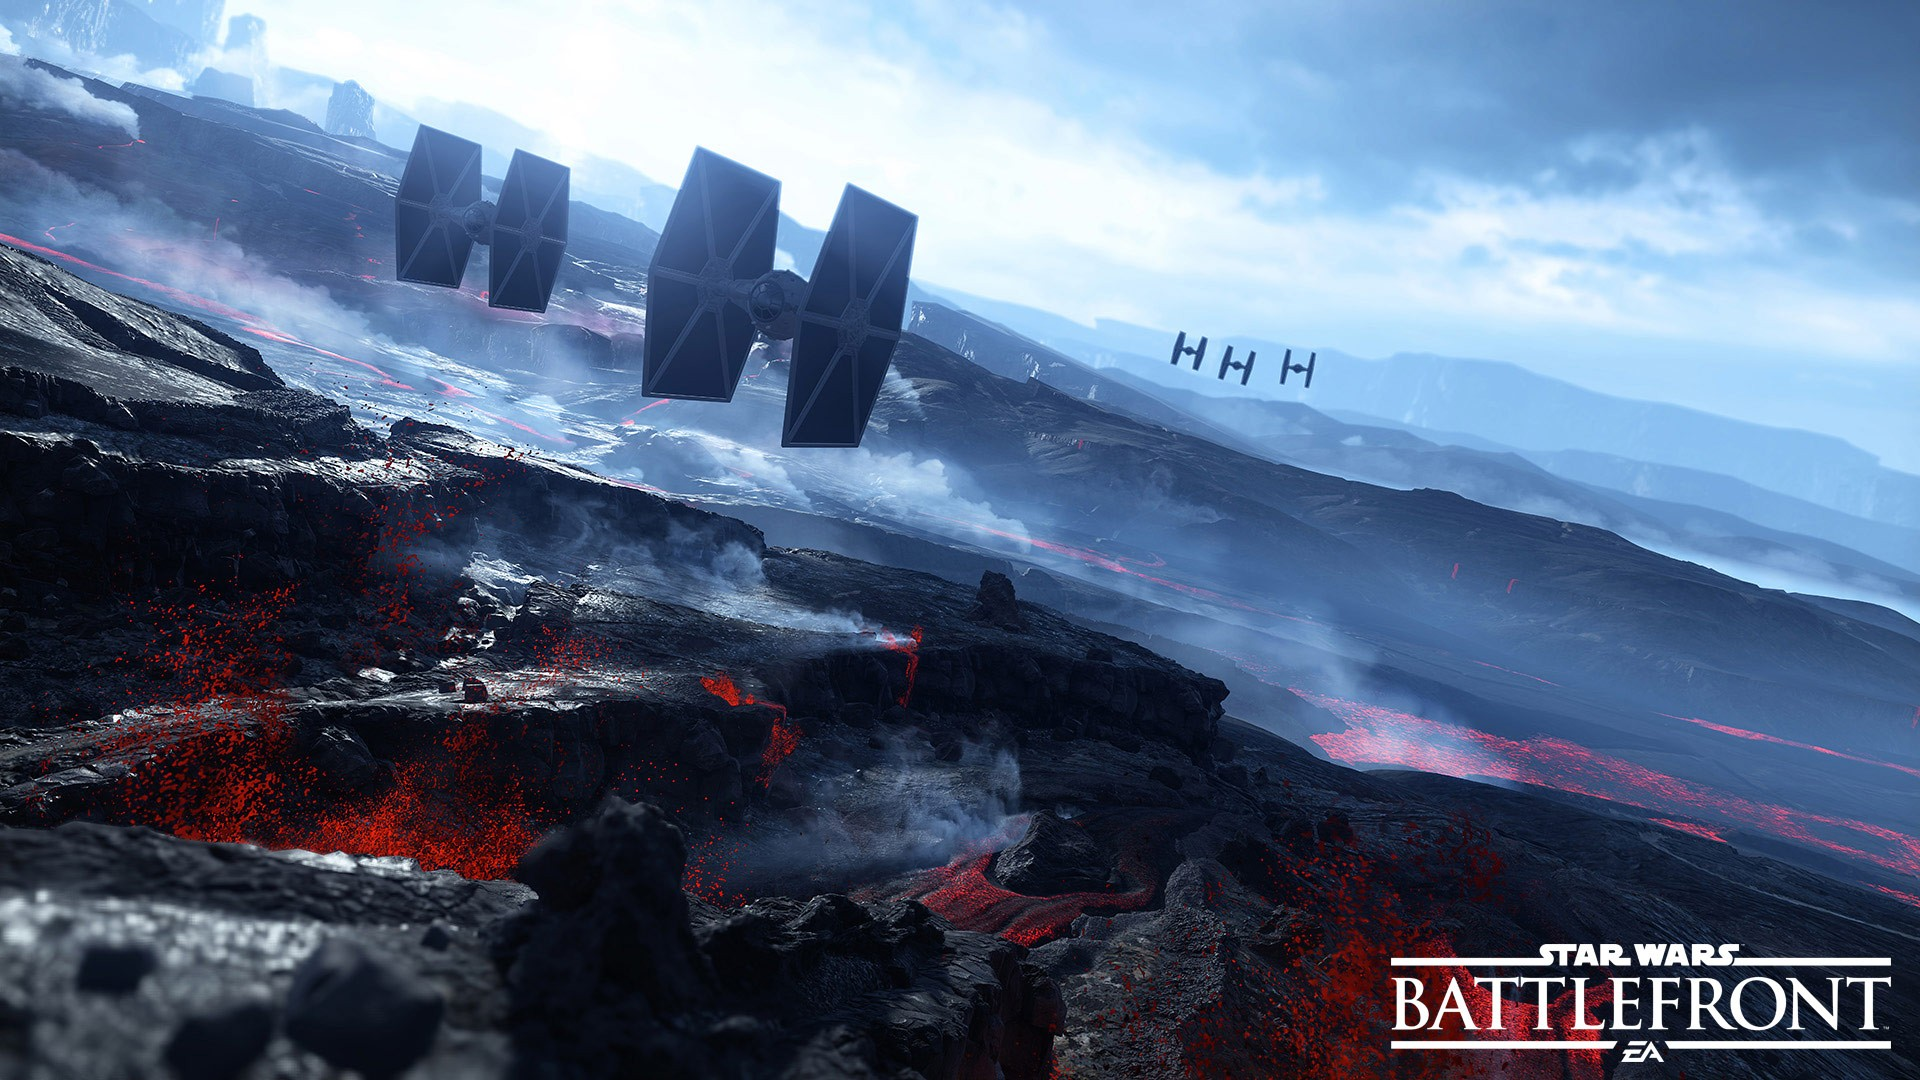 Star Wars Battlefront Star Wars EA Games Dice TIE Fighter 1920x1080